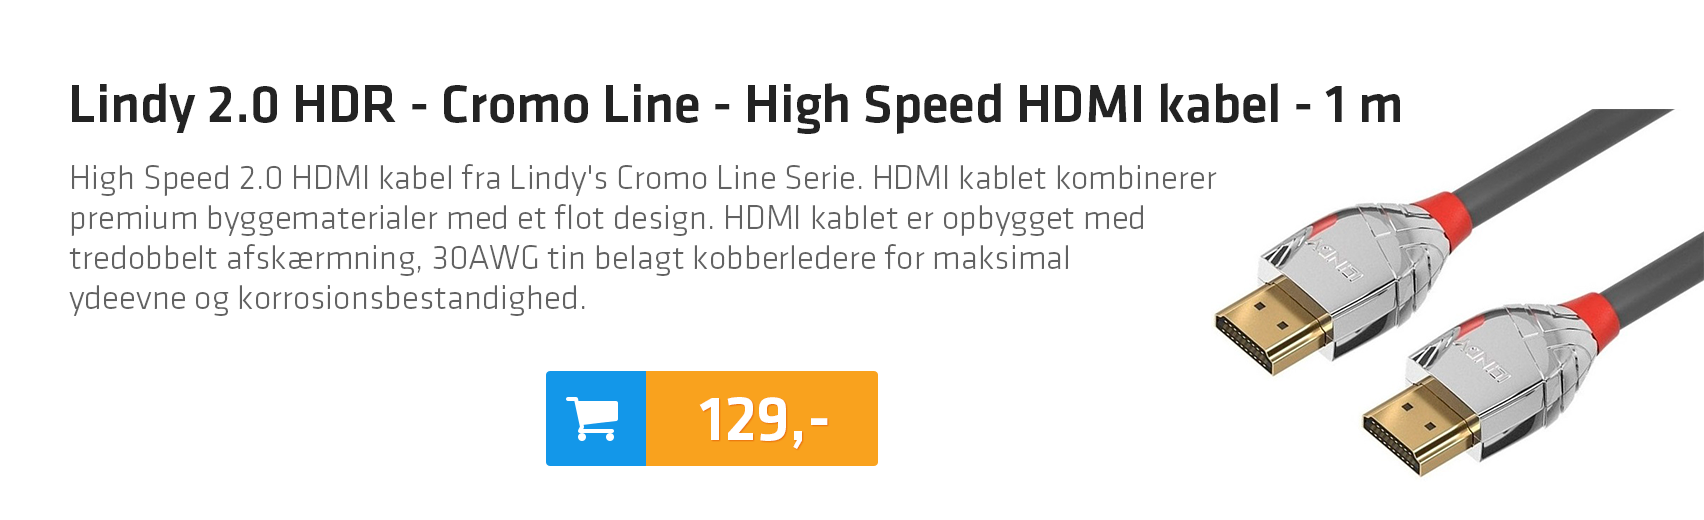 Lindy 2.0 HDR - Cromo Line - High Speed HDMI kabel - 1 m